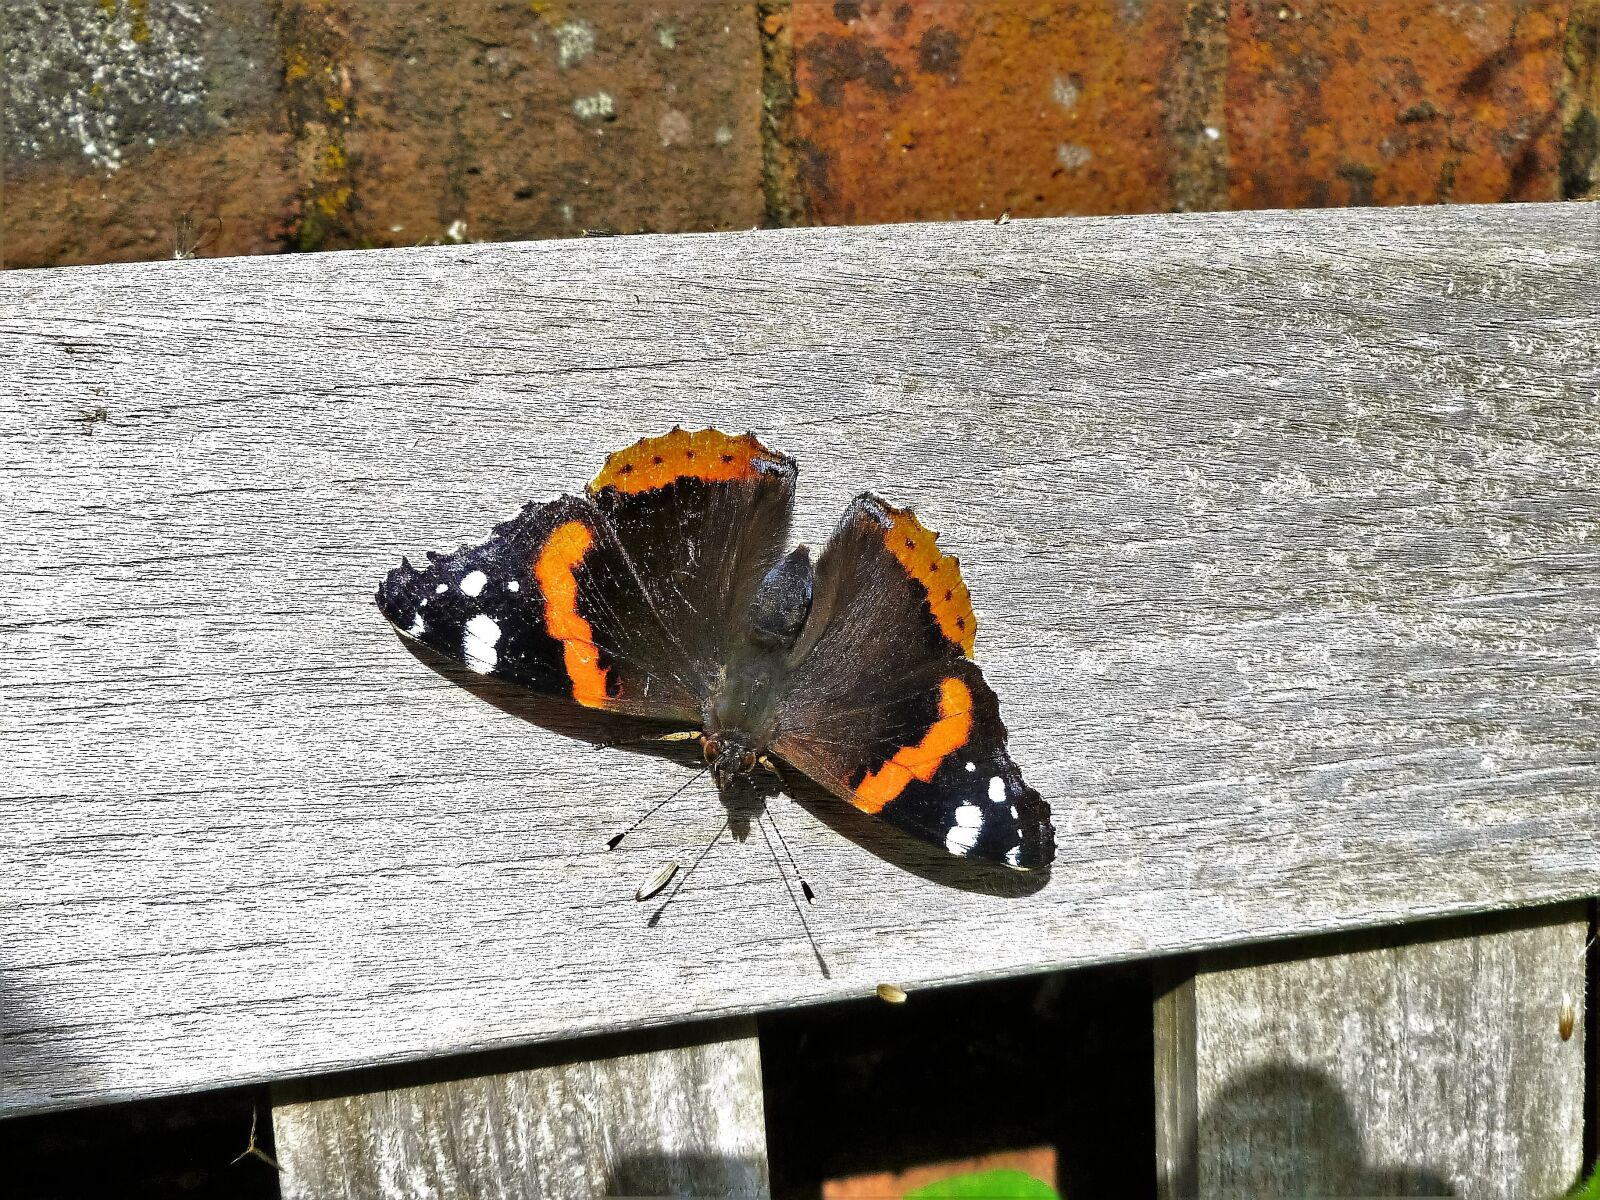 """Panasonic DMC-FH20 sample photo. """"Red admiral, butterfly, admiral"""" photography"""